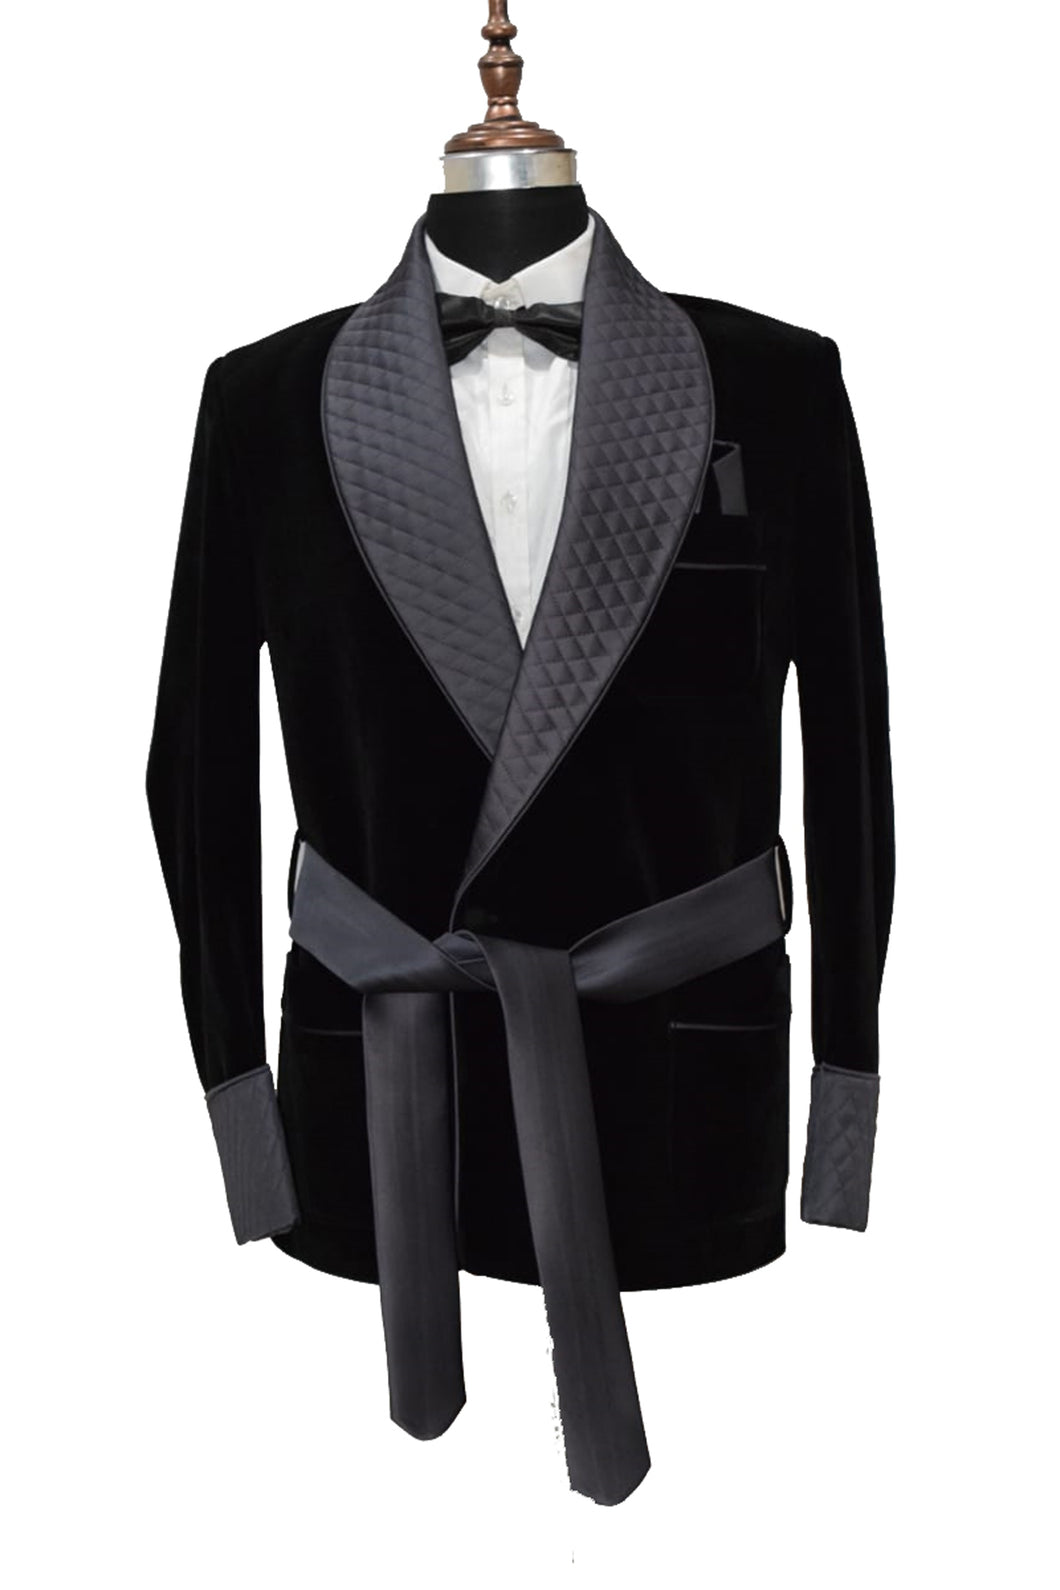 Men Black Smoking Jacket Dinner Party Wear Blazer - TrendsfashionIN